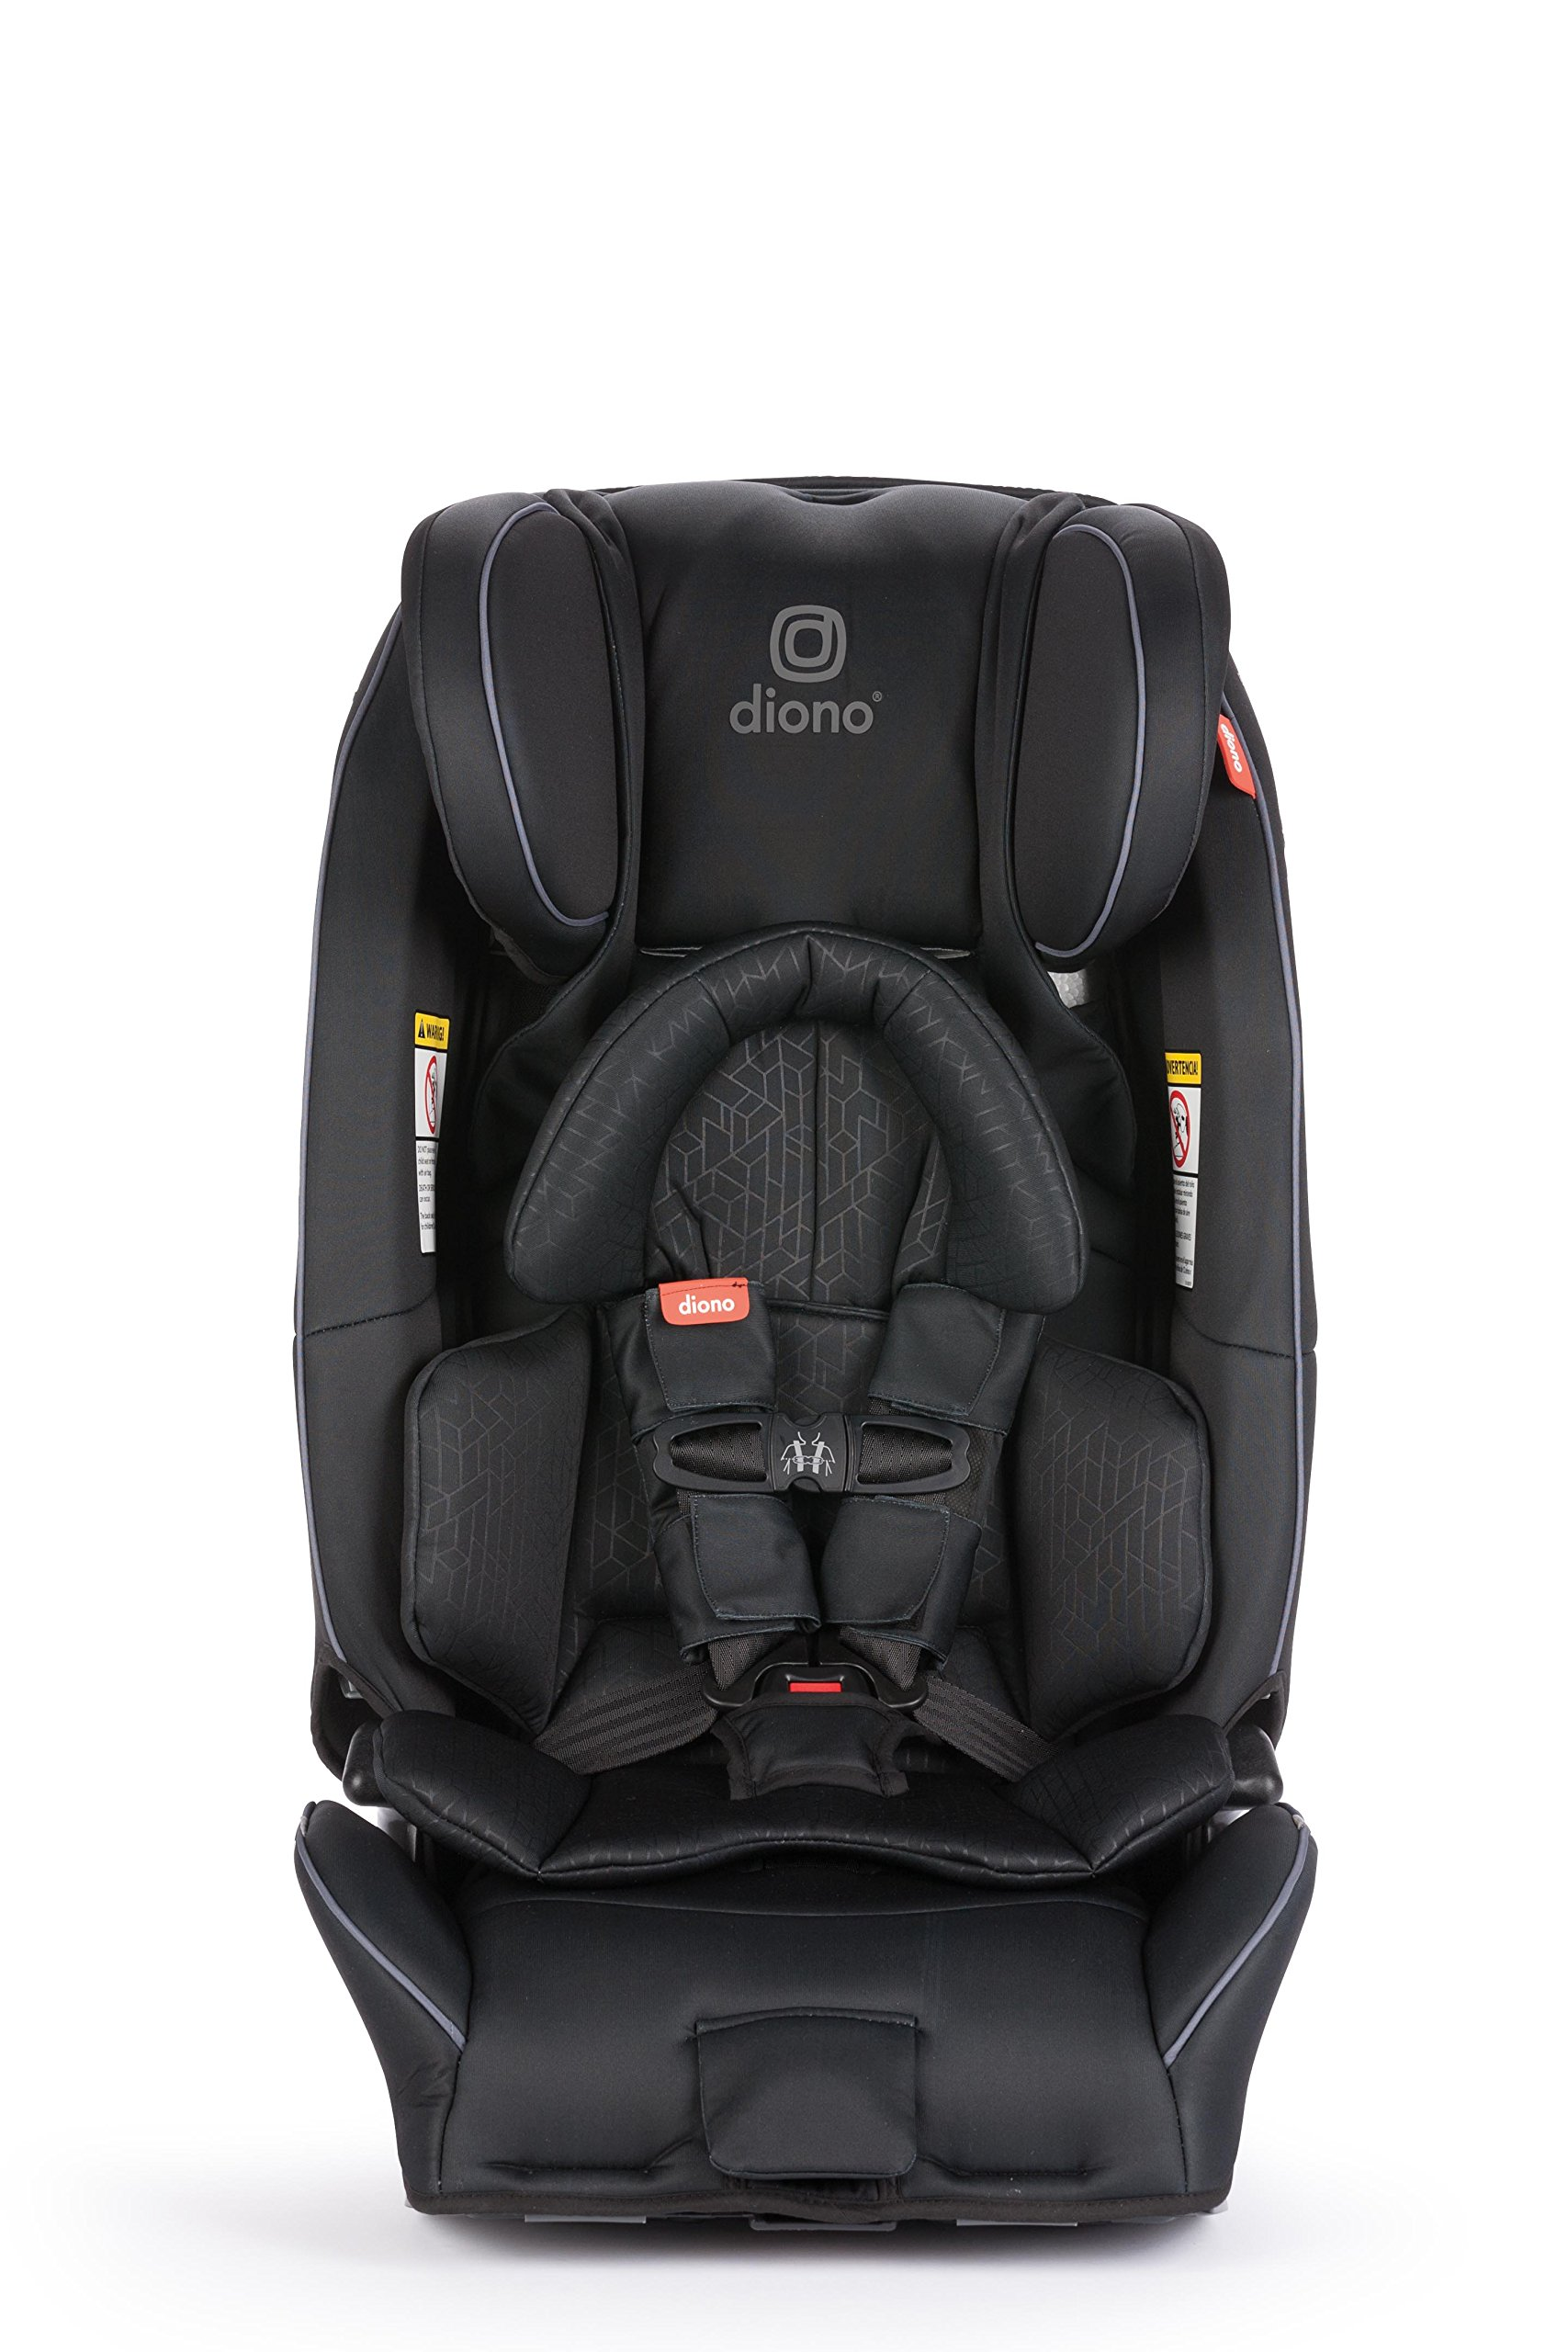 Diono Radian 3RXT All-in-One Convertible Car Seat - Extended Rear-Facing 5-45 Pounds, Forward-Facing to 65 Pounds, Booster to 120 Pounds - The Original 3 Across, Black by Diono (Image #1)